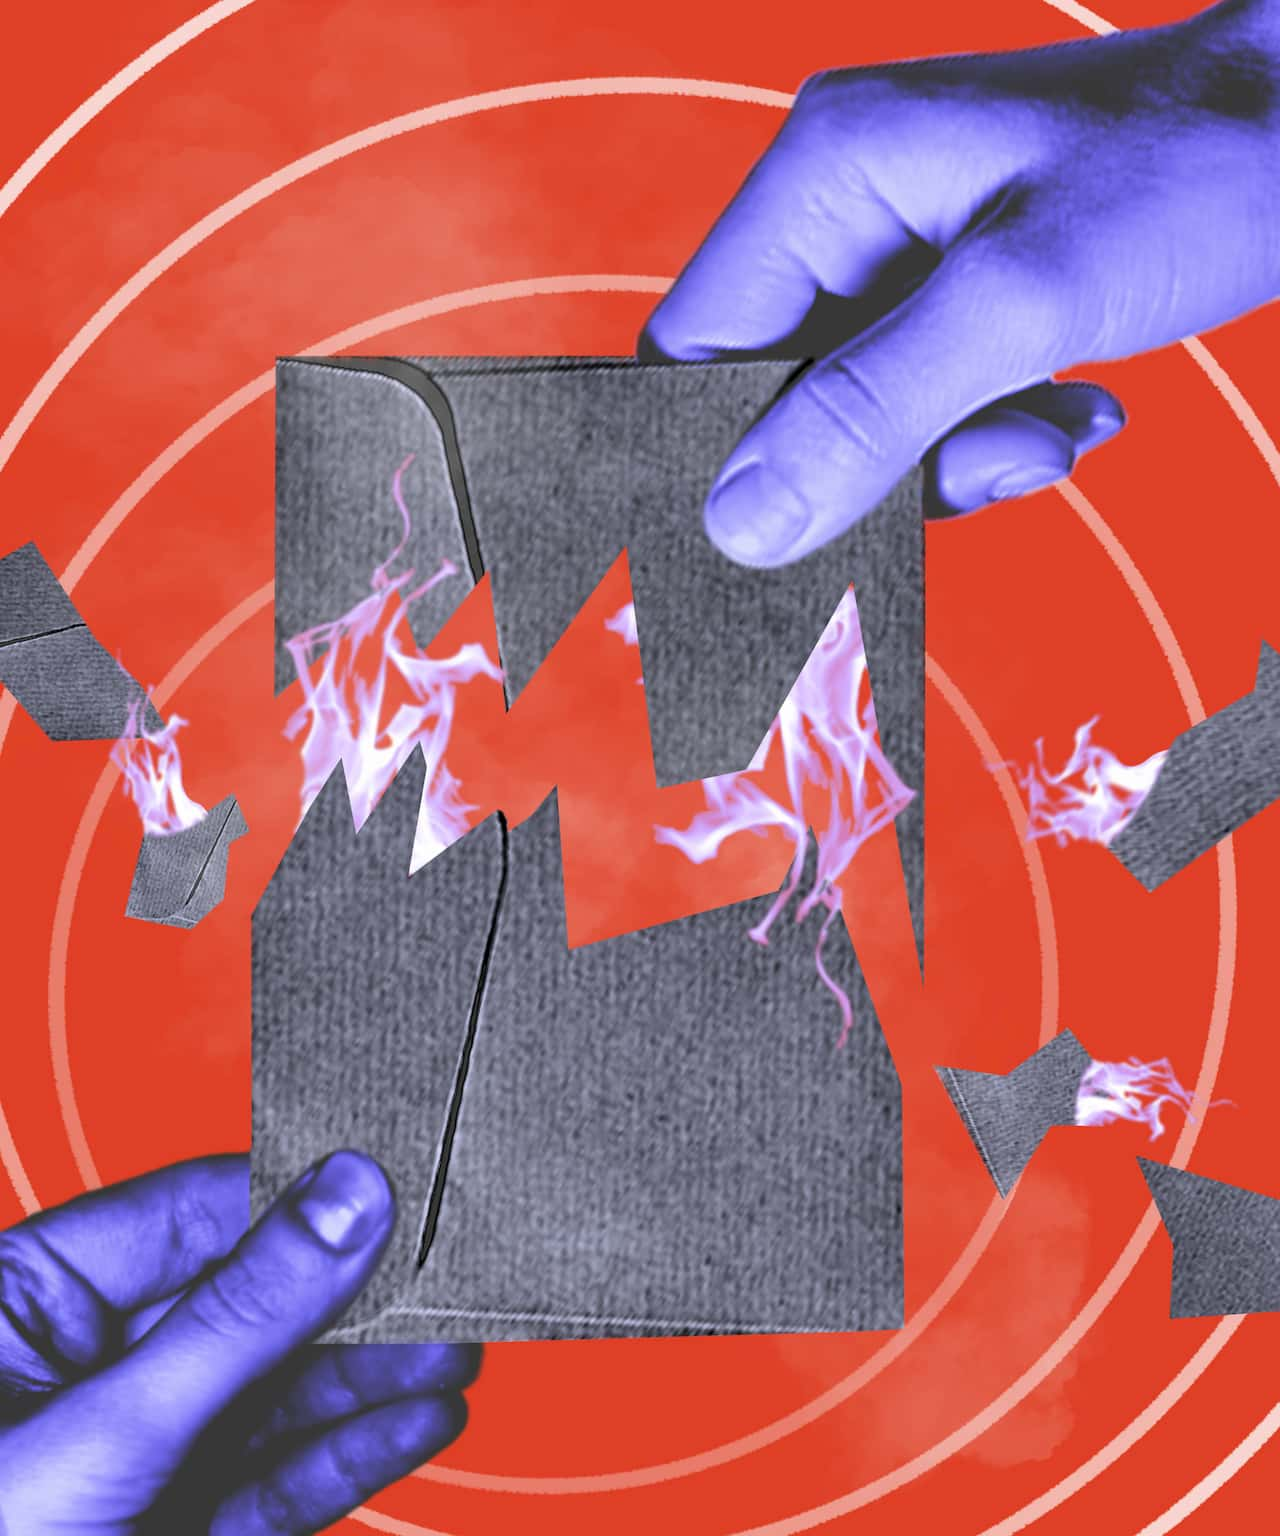 An illustration of two hands pulling a burning envelope apart.